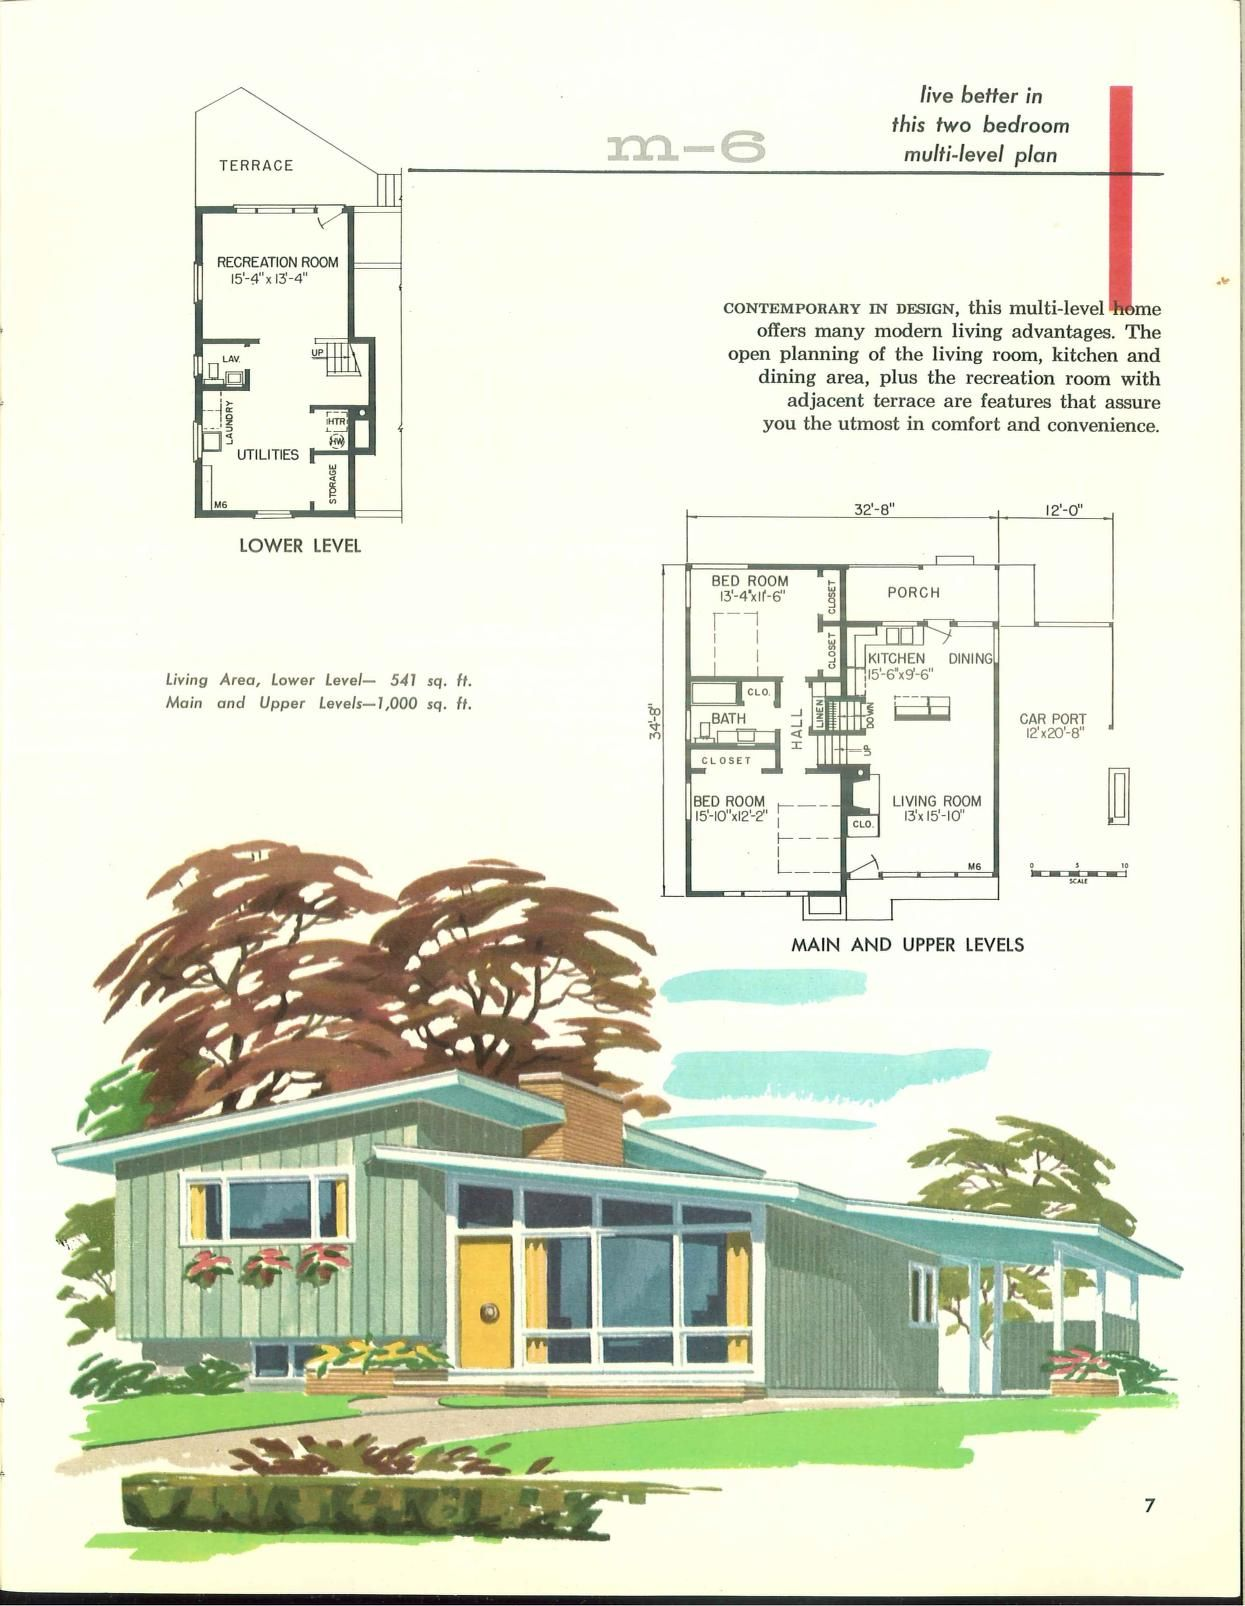 Pin By Paul On Vintage Architecture Vintage House Plans Mid Century Modern House Plans How To Plan